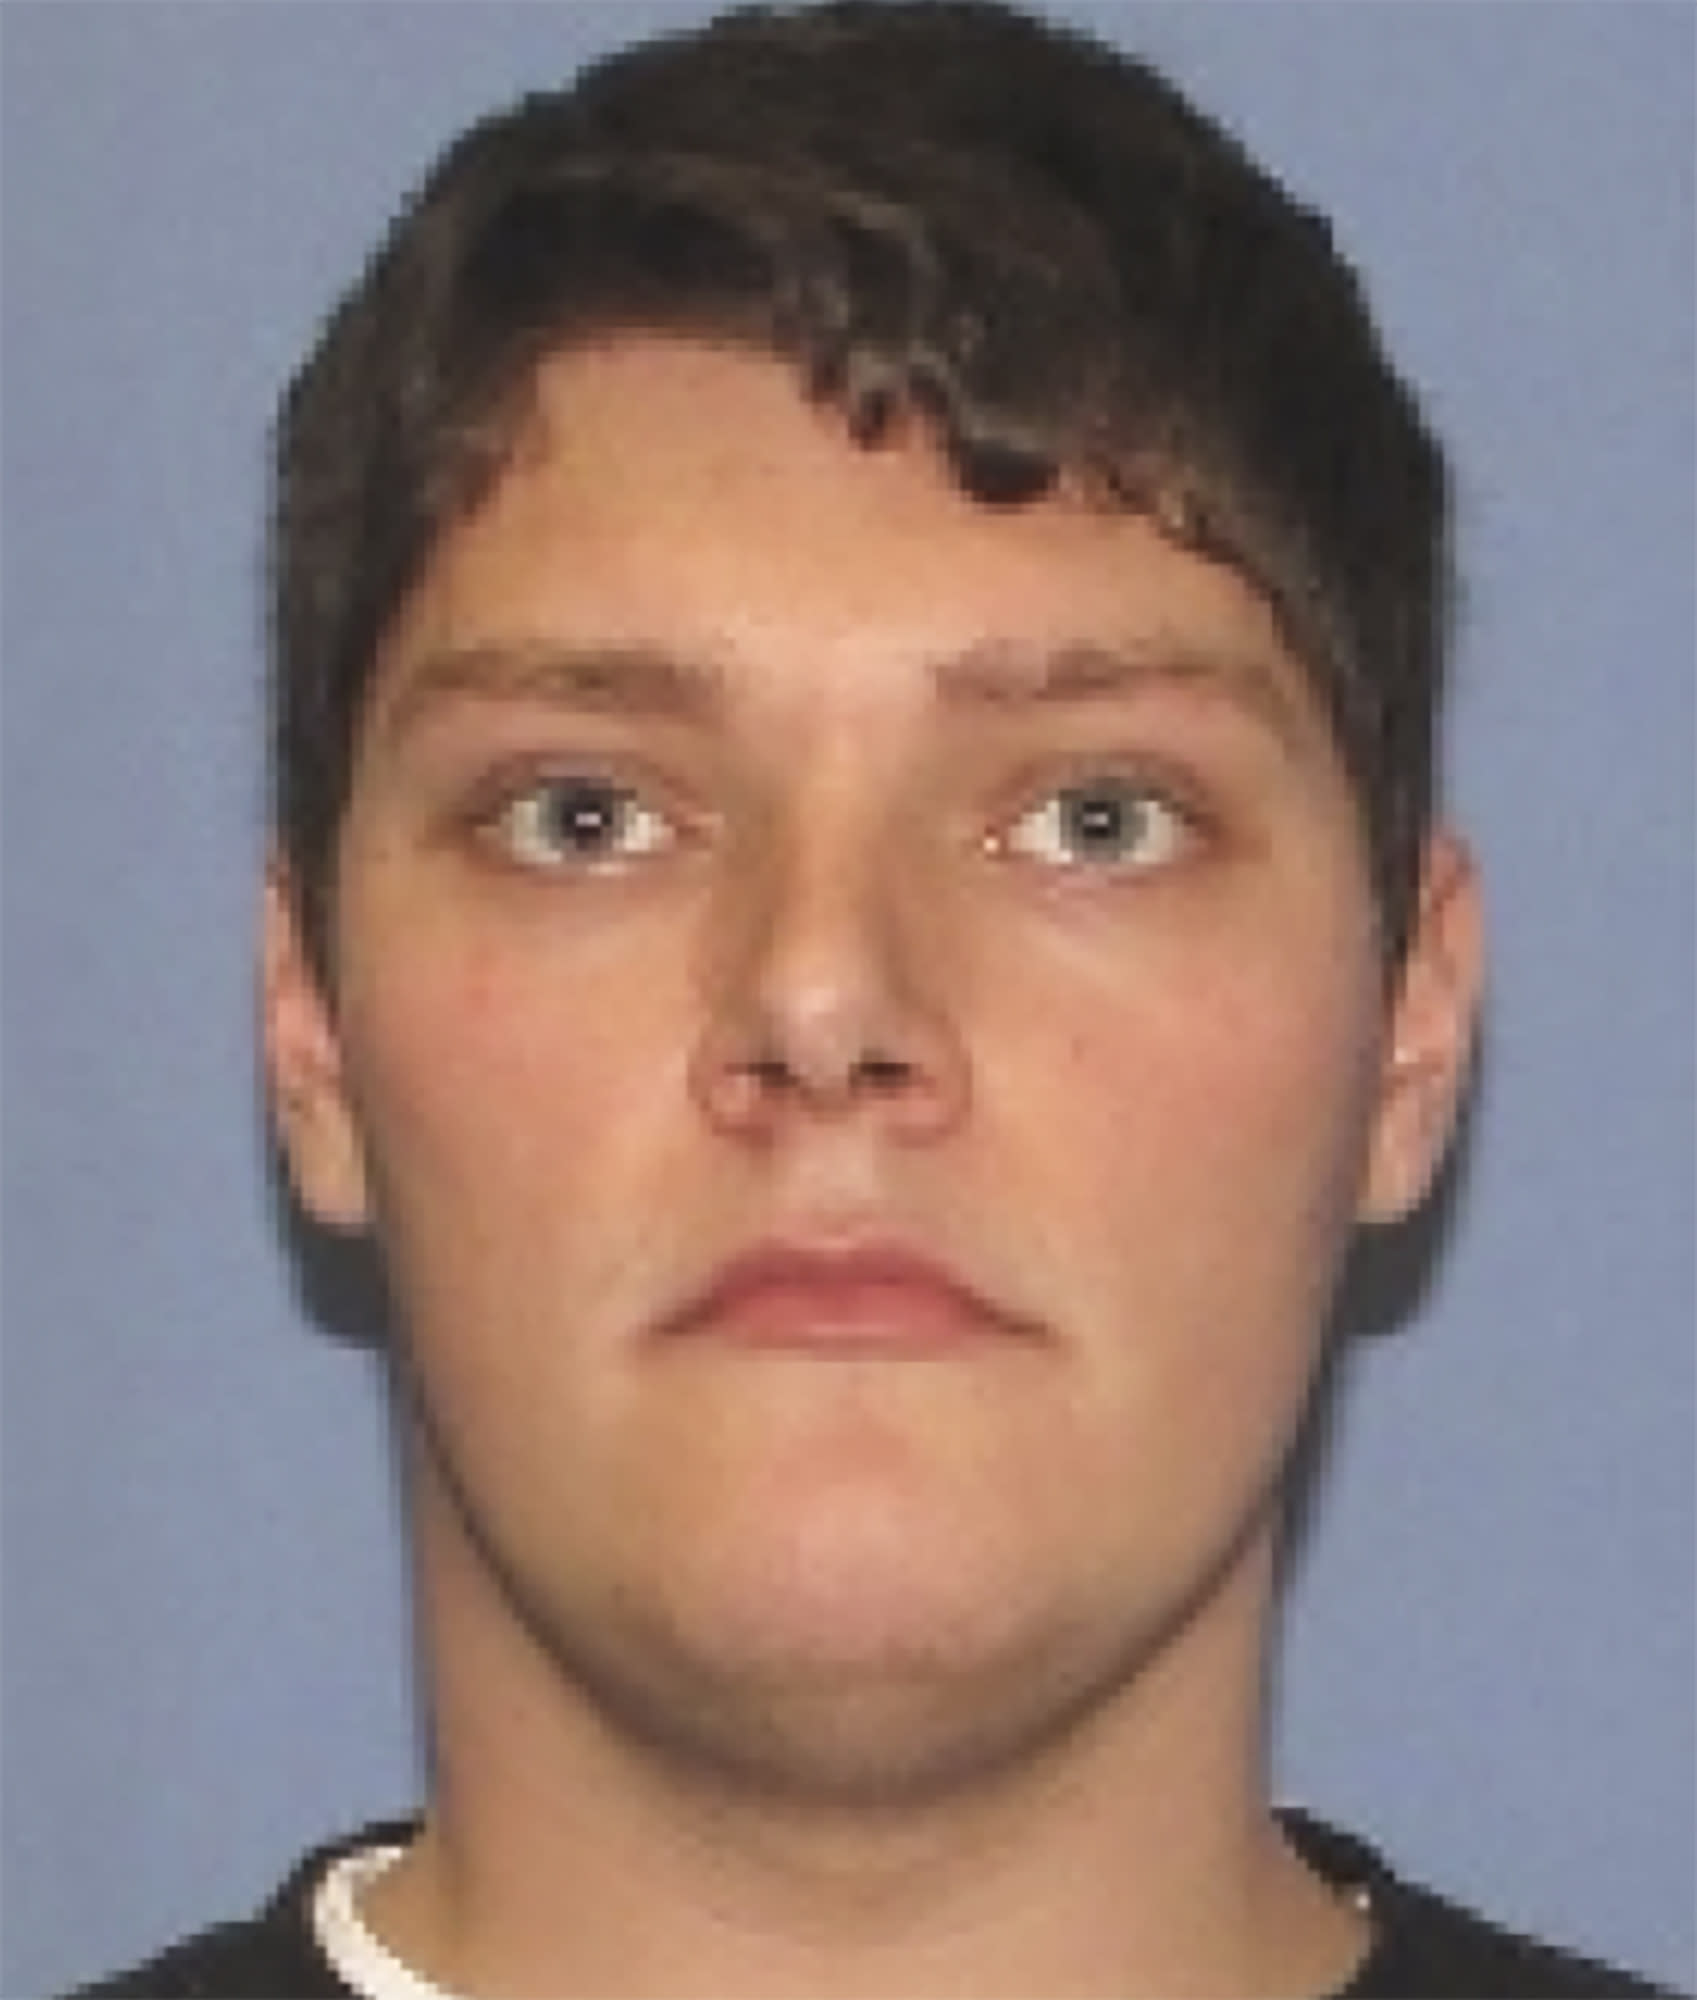 Classmates: Ohio Shooter Kept a 'Hit List' and a 'Rape List'